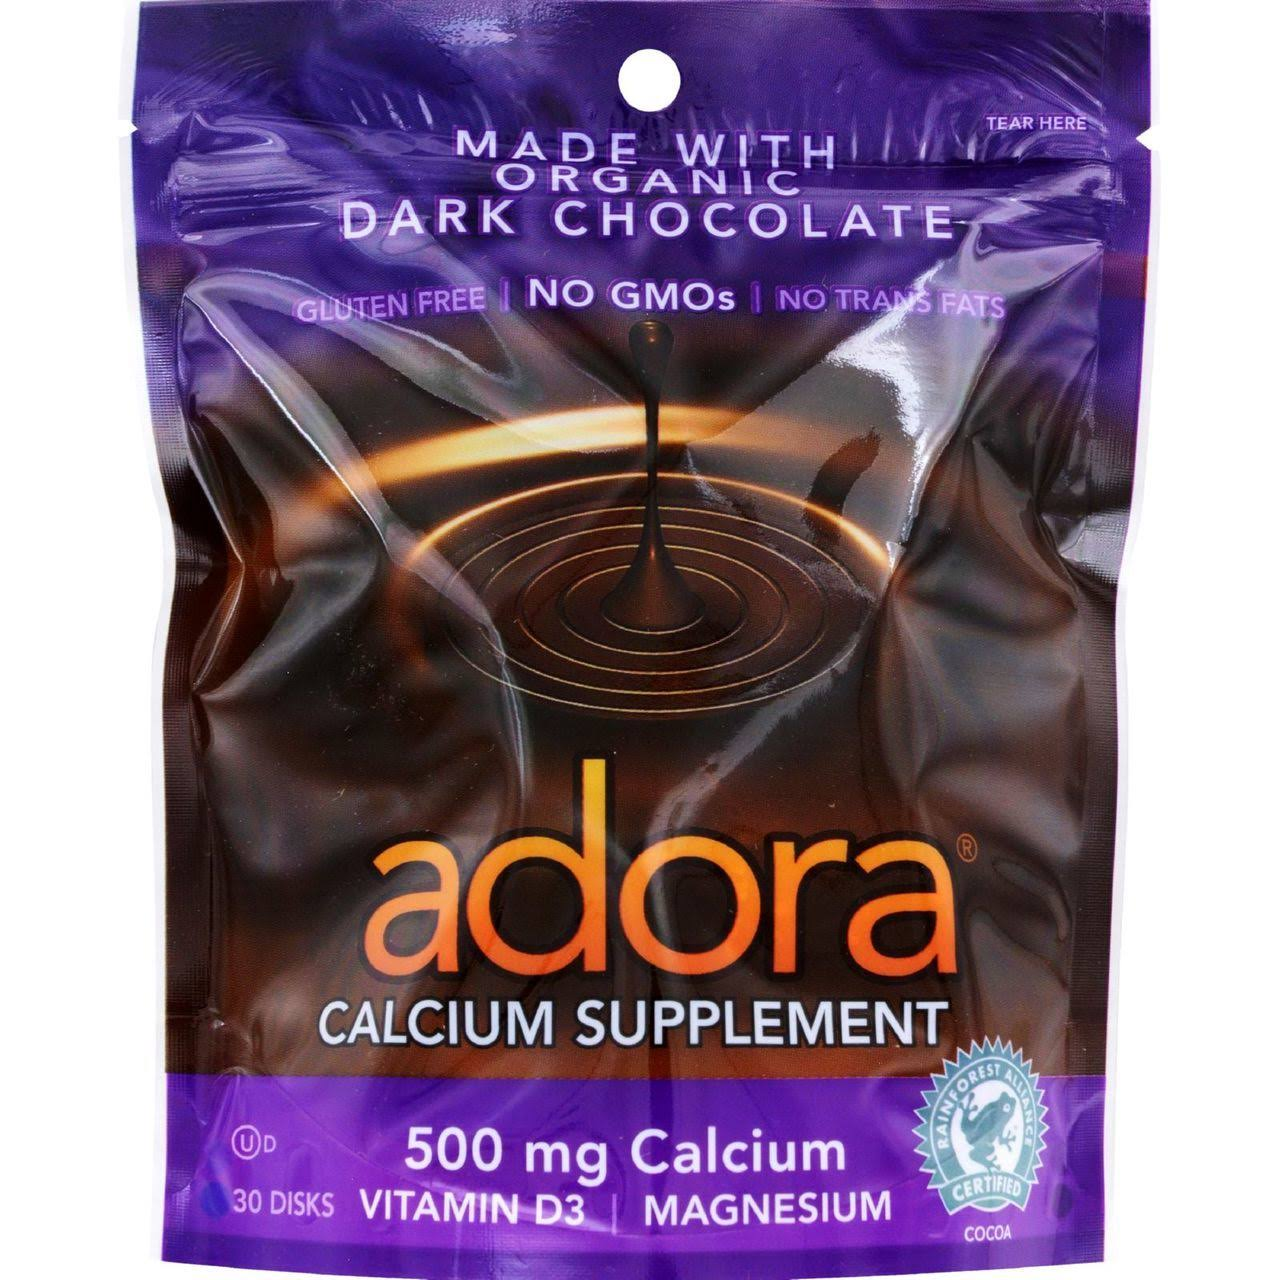 Adora Calcium Supplement Disk - Organic Dark Chocolate, 30 Count